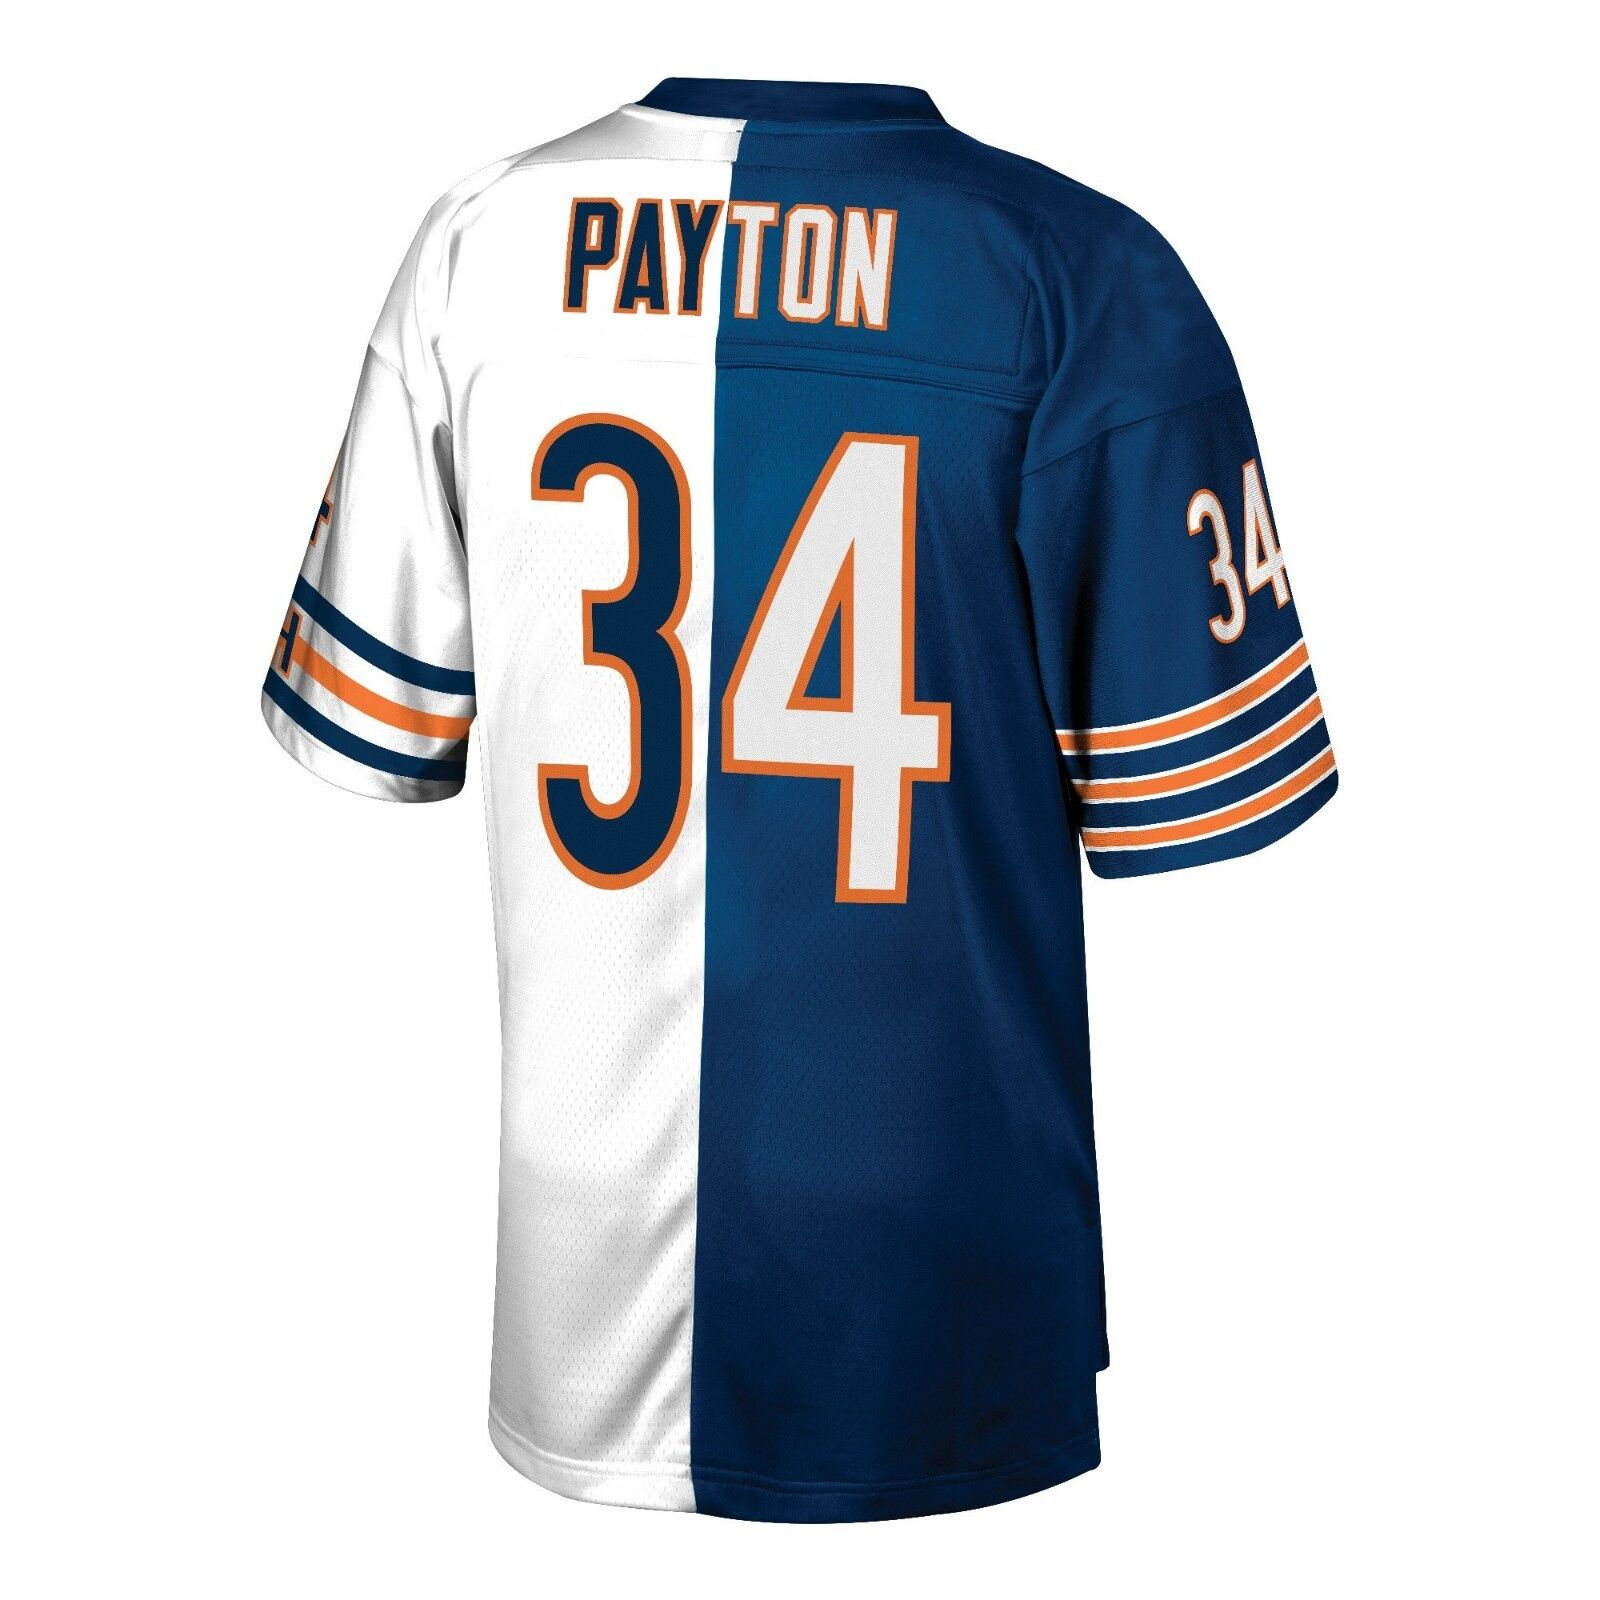 Mitchell /& ness Chicago Bears Walter Payton NFL Legacy Jersey Throwback Jersey